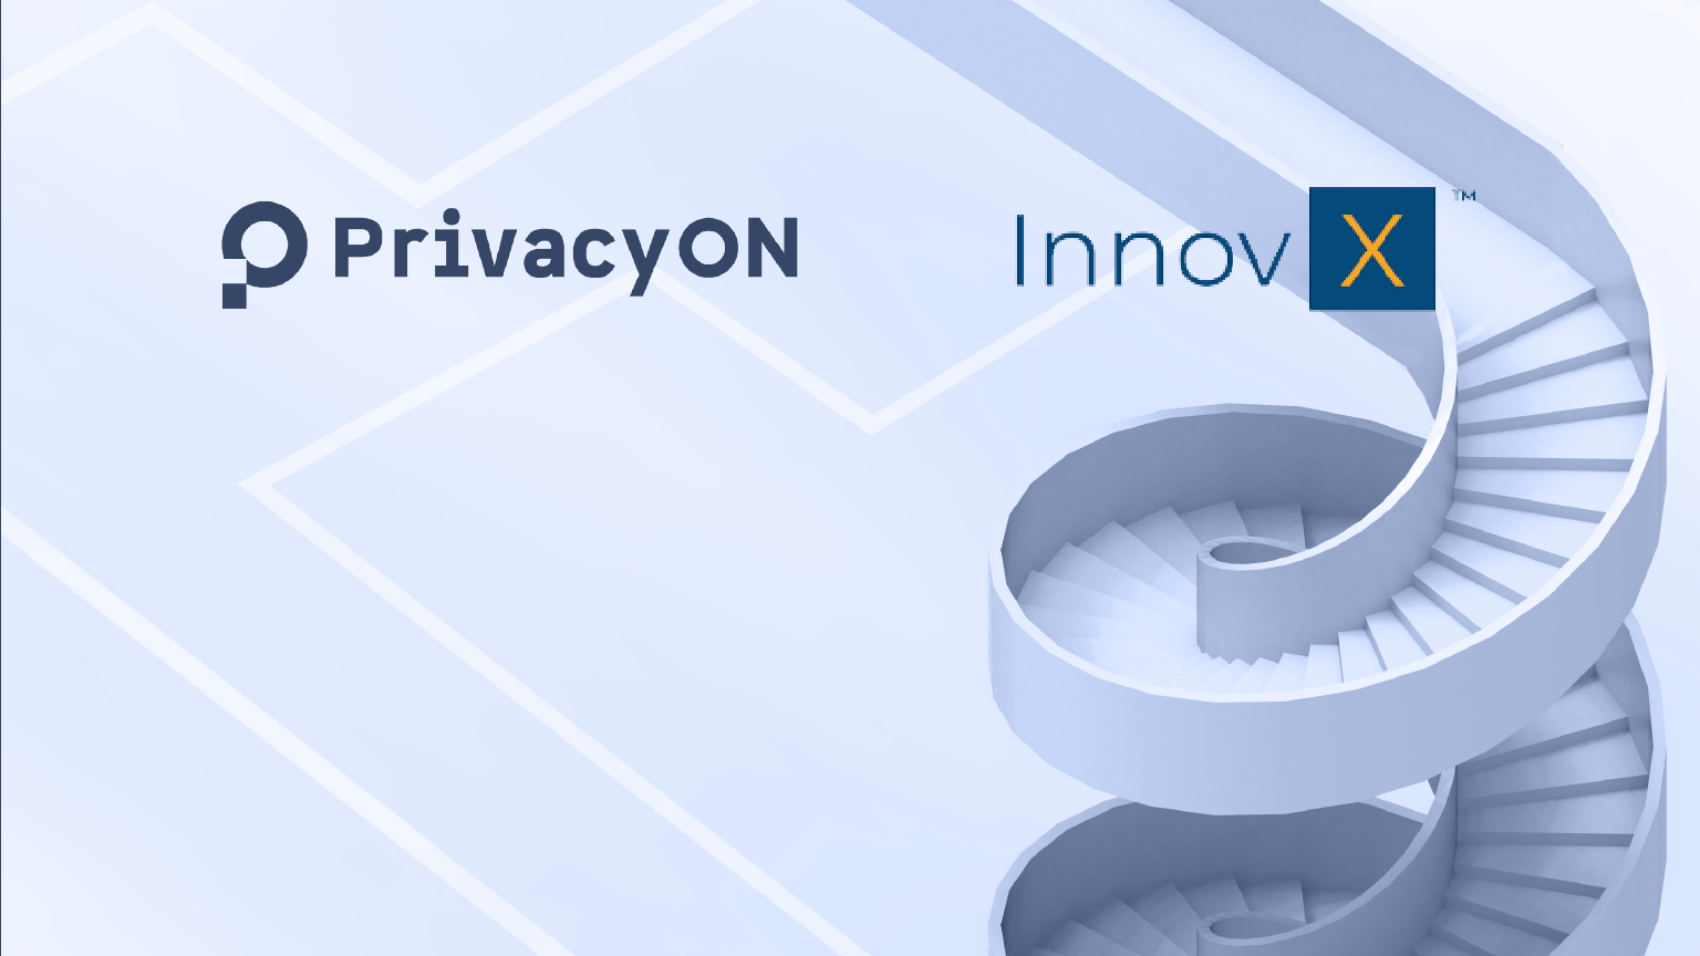 PrivacyON Innovx_partnership